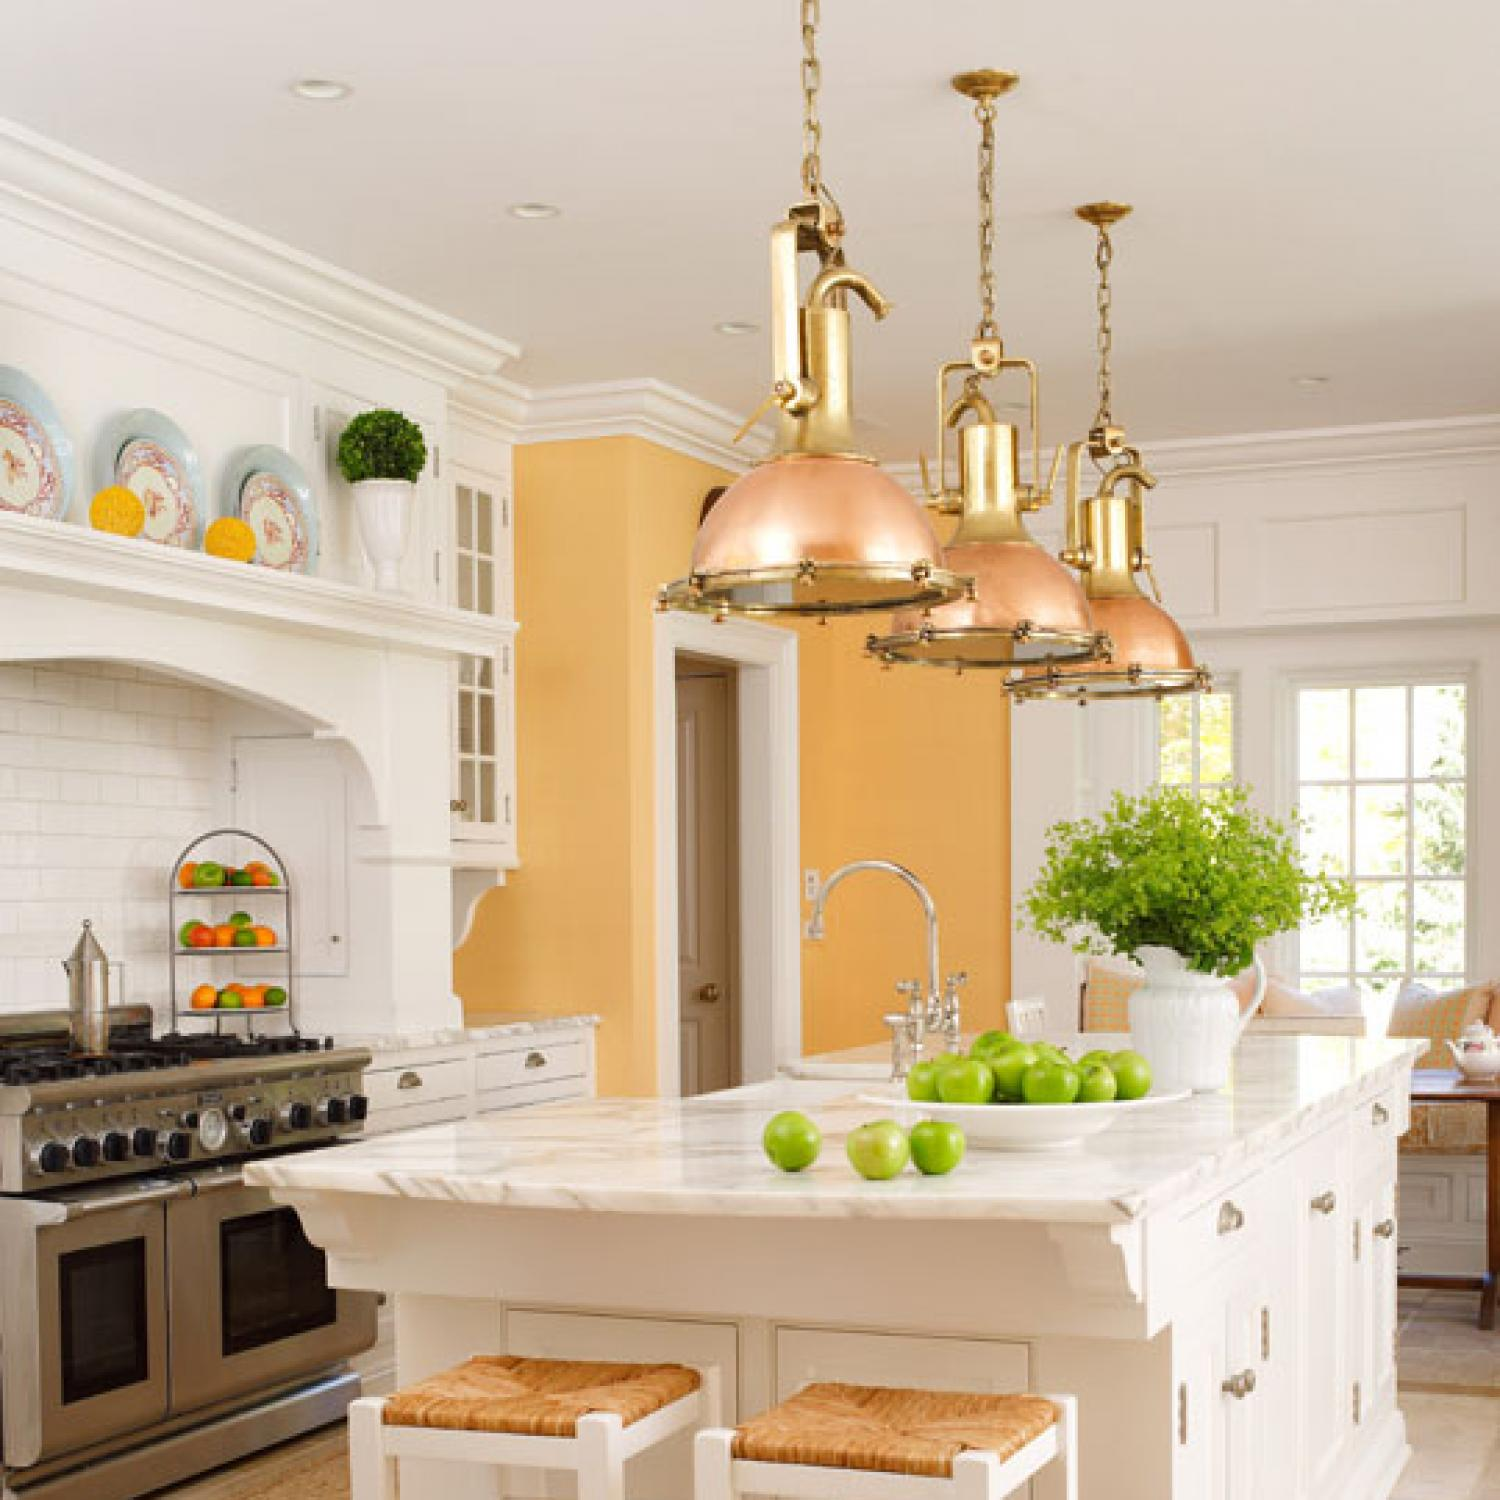 Home Kitchen: Kitchen Remodel: Finding Space